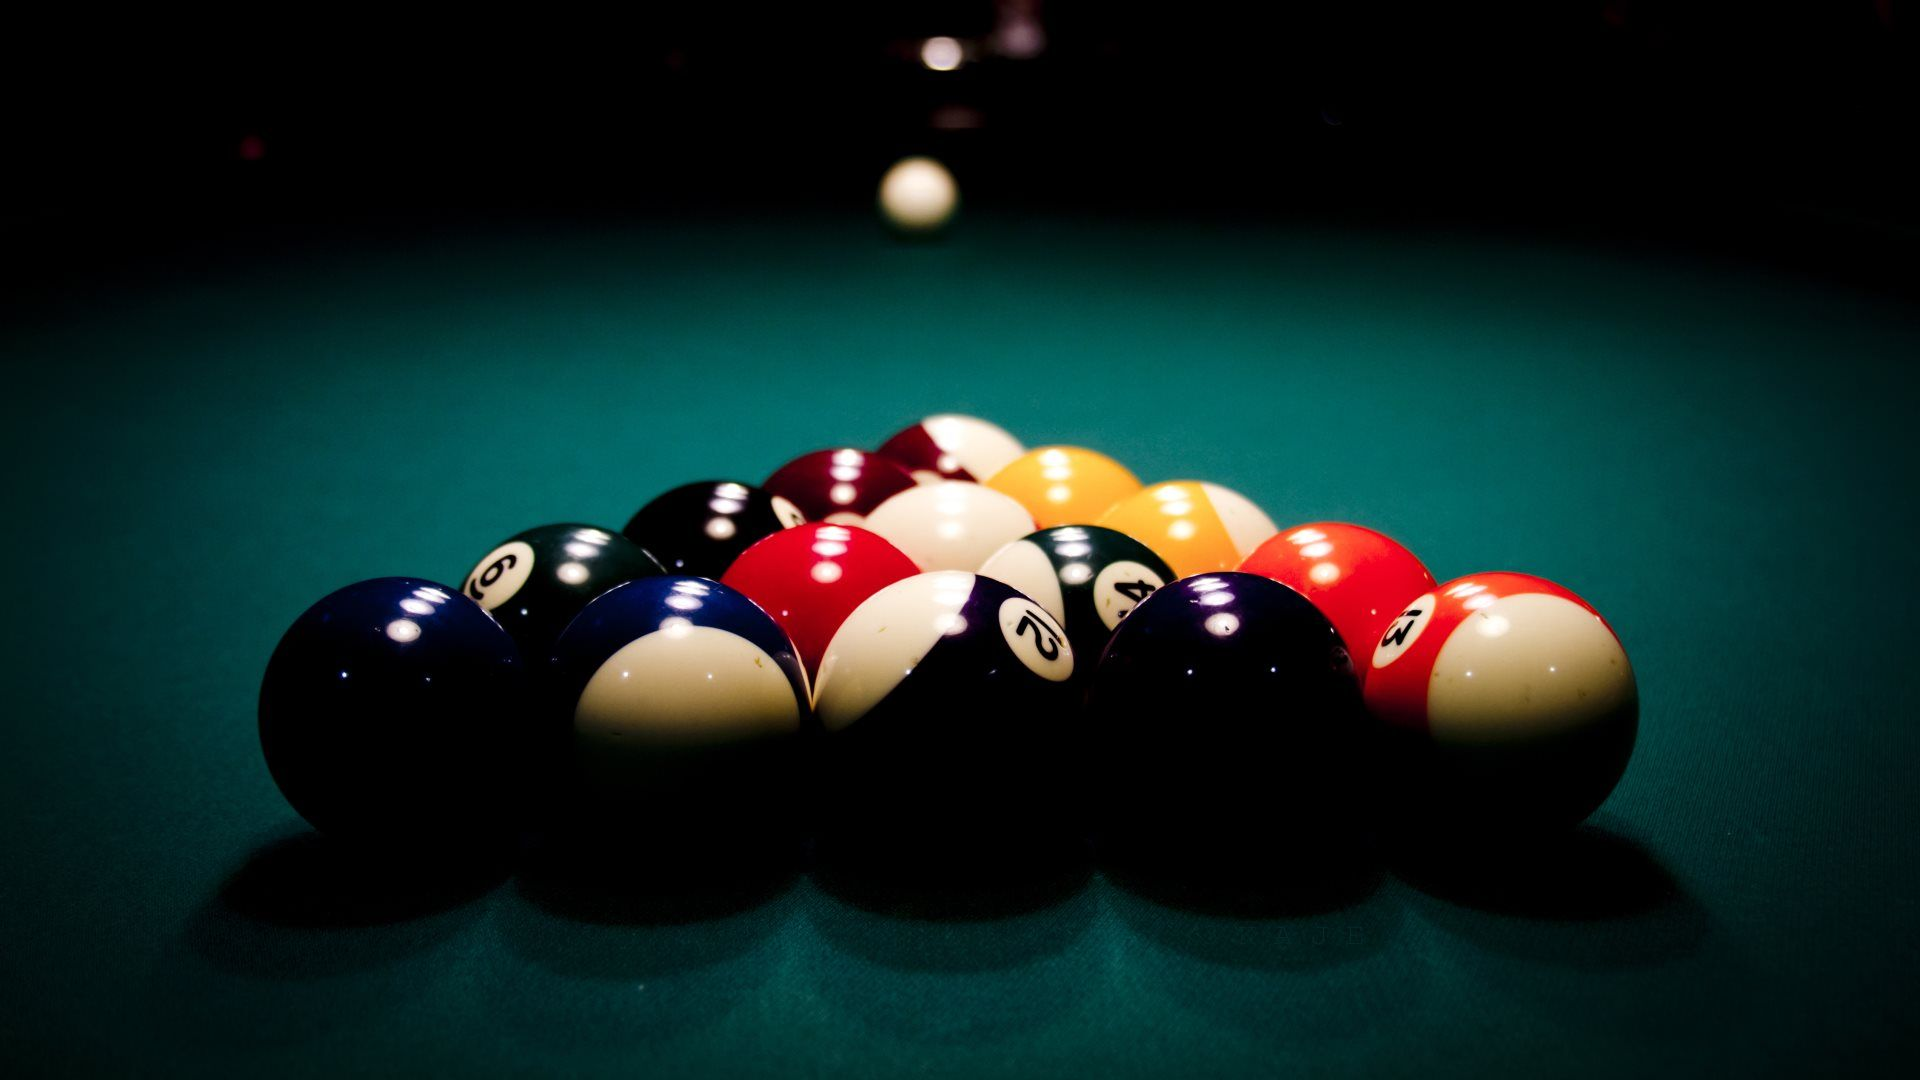 Snooker And Pool Wallpapers - 8 Ball Pool Hd , HD Wallpaper & Backgrounds